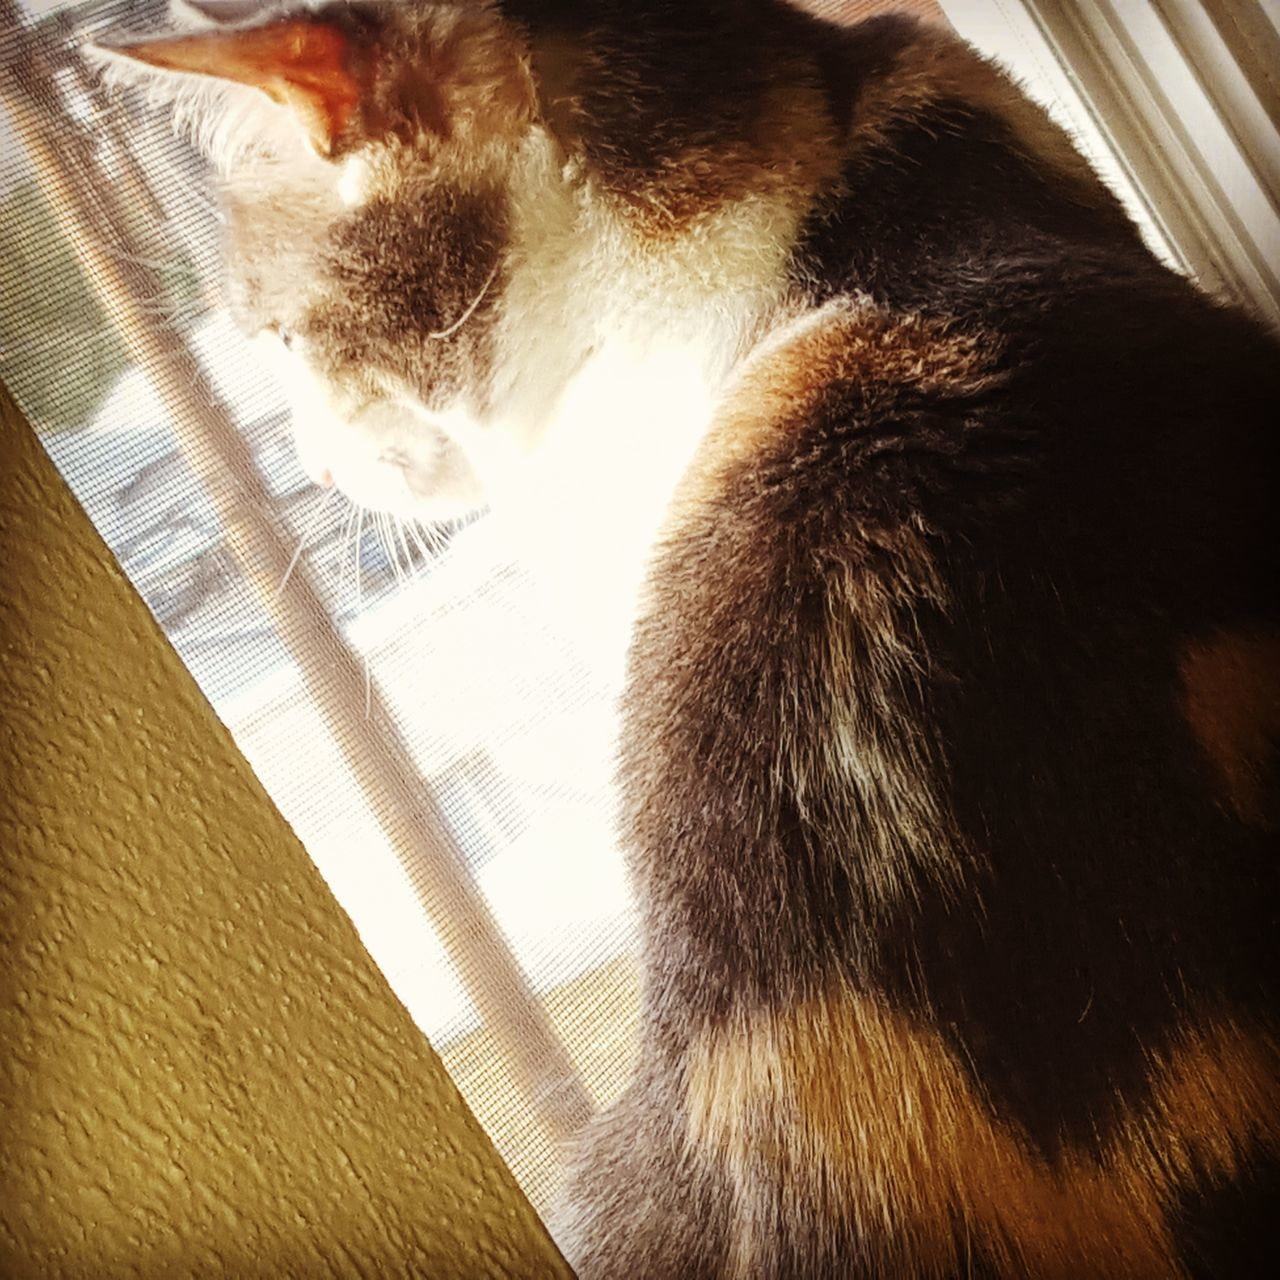 Thoughtful moments Cats 🐱 Thoughtful Relaxing Warm Day